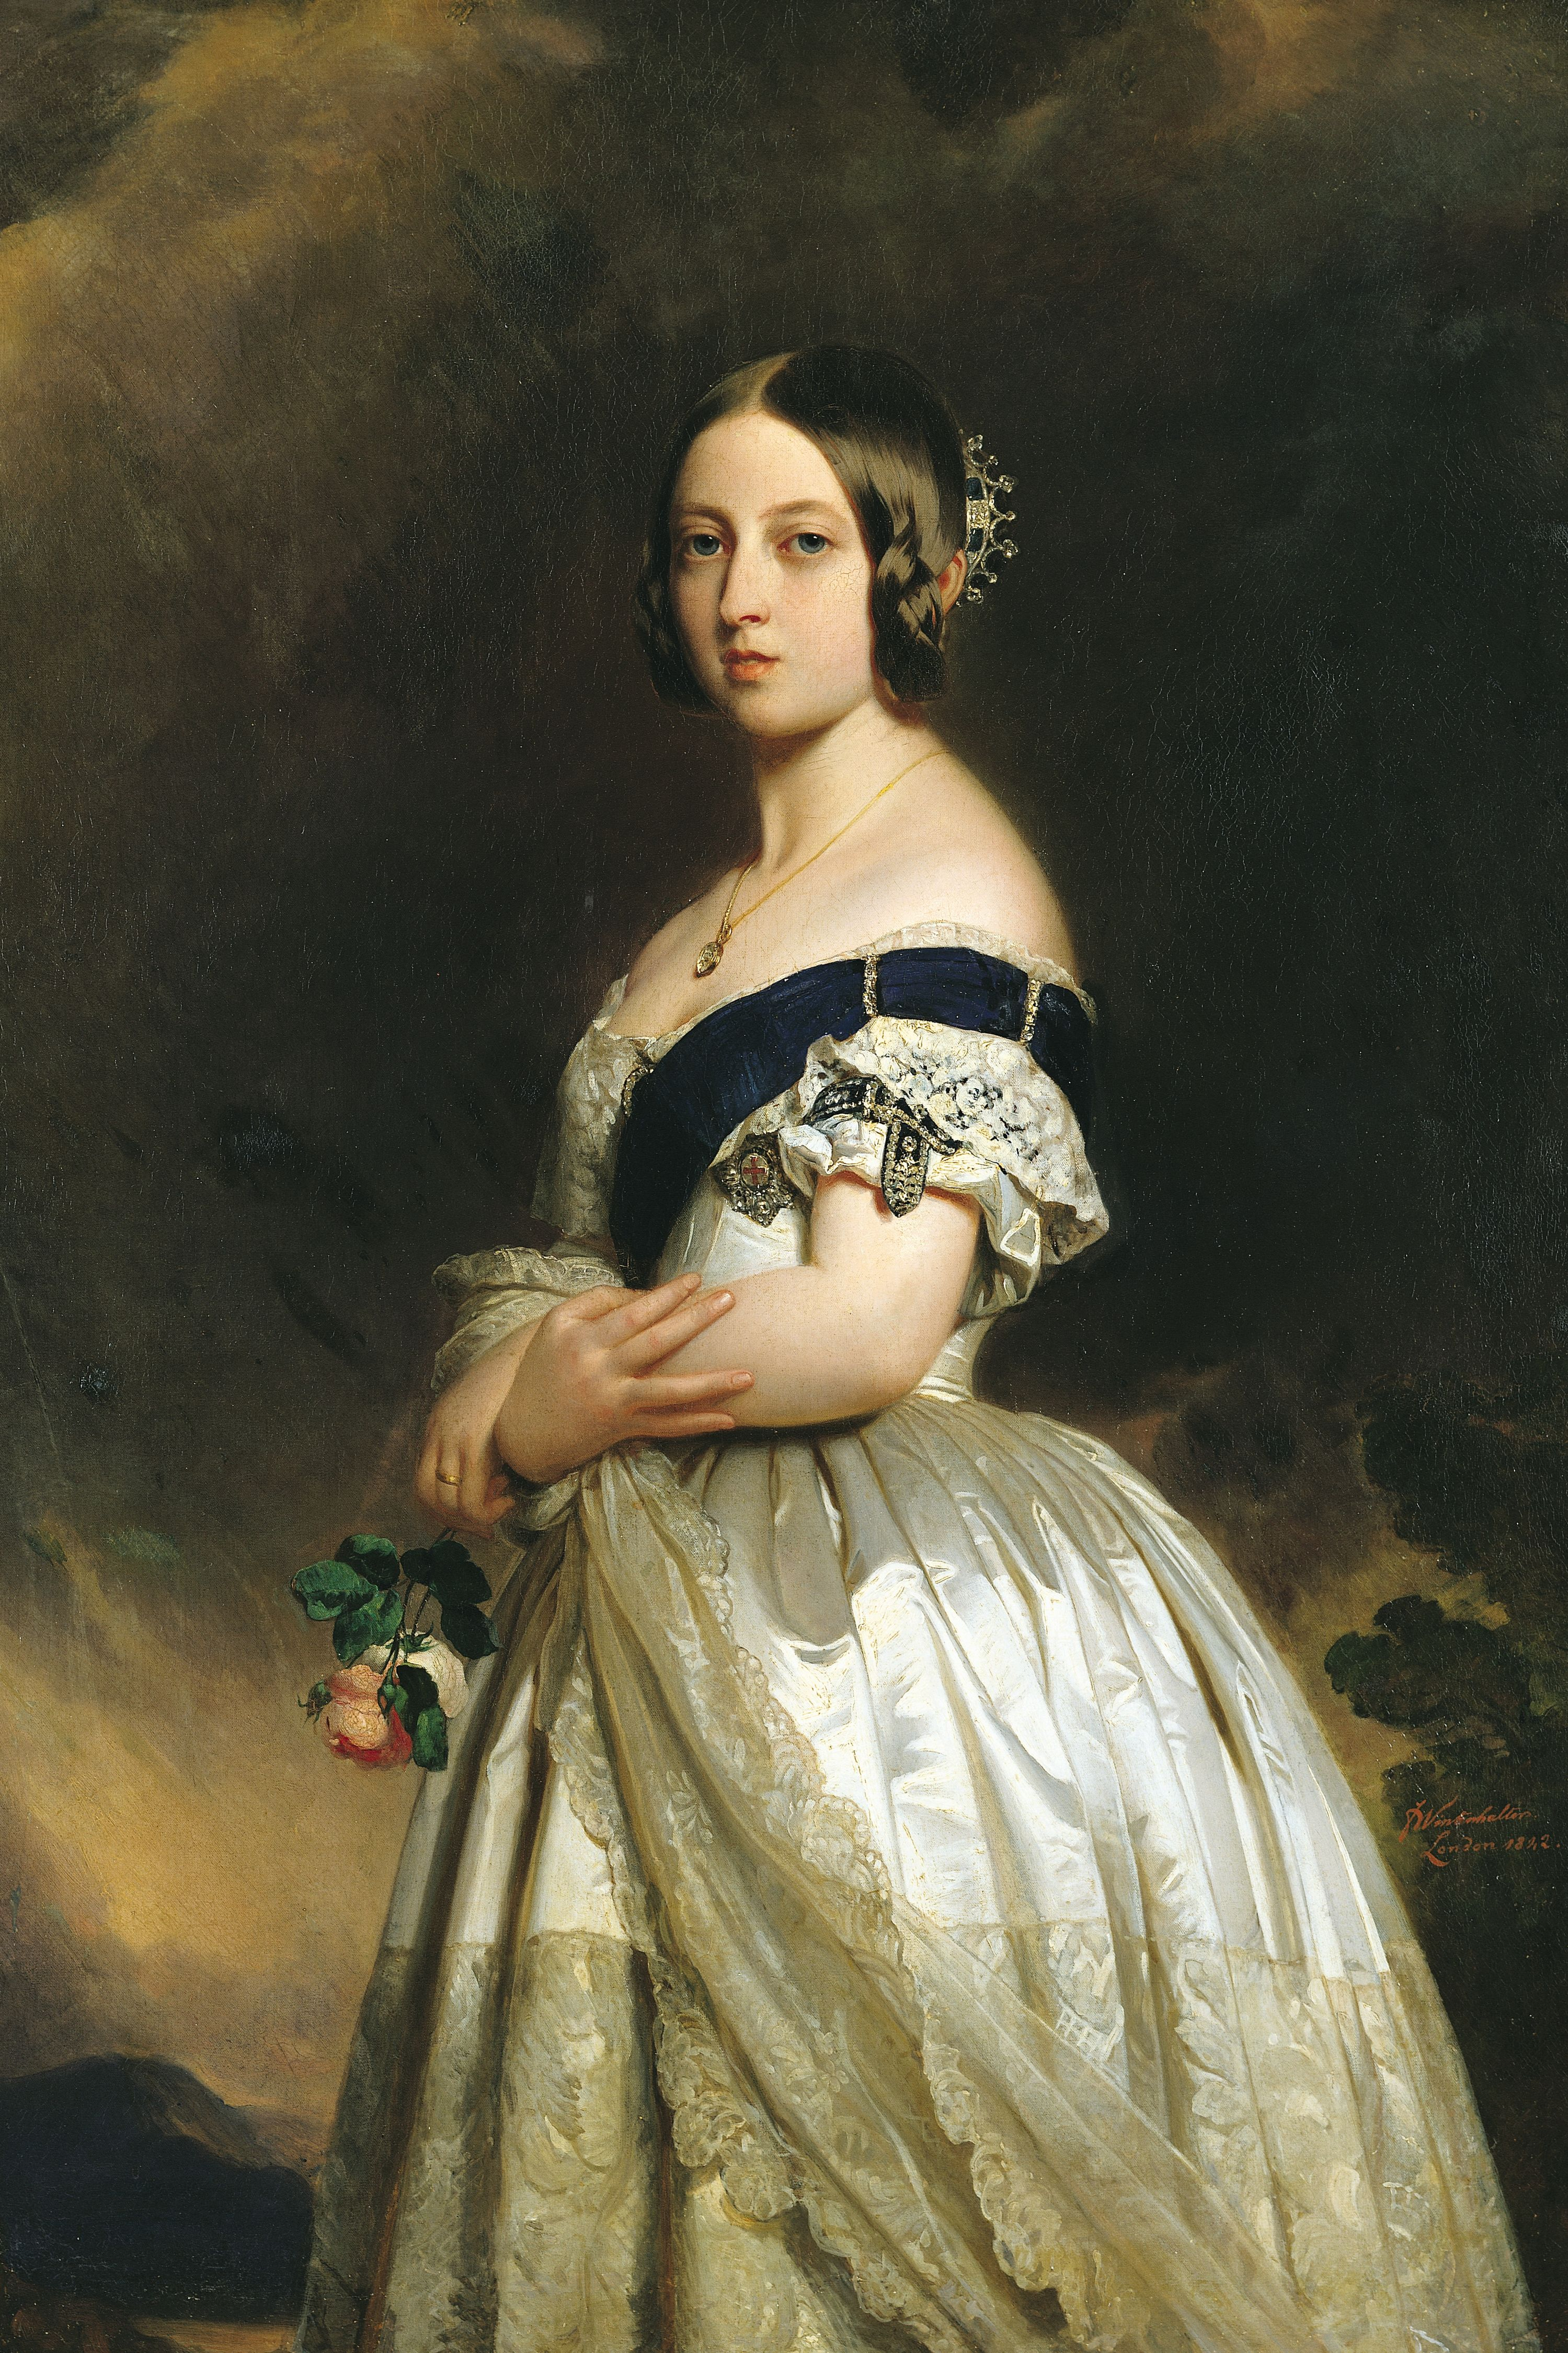 'Victoria' Fans: Learn These Surprising Facts About Queen Victoria